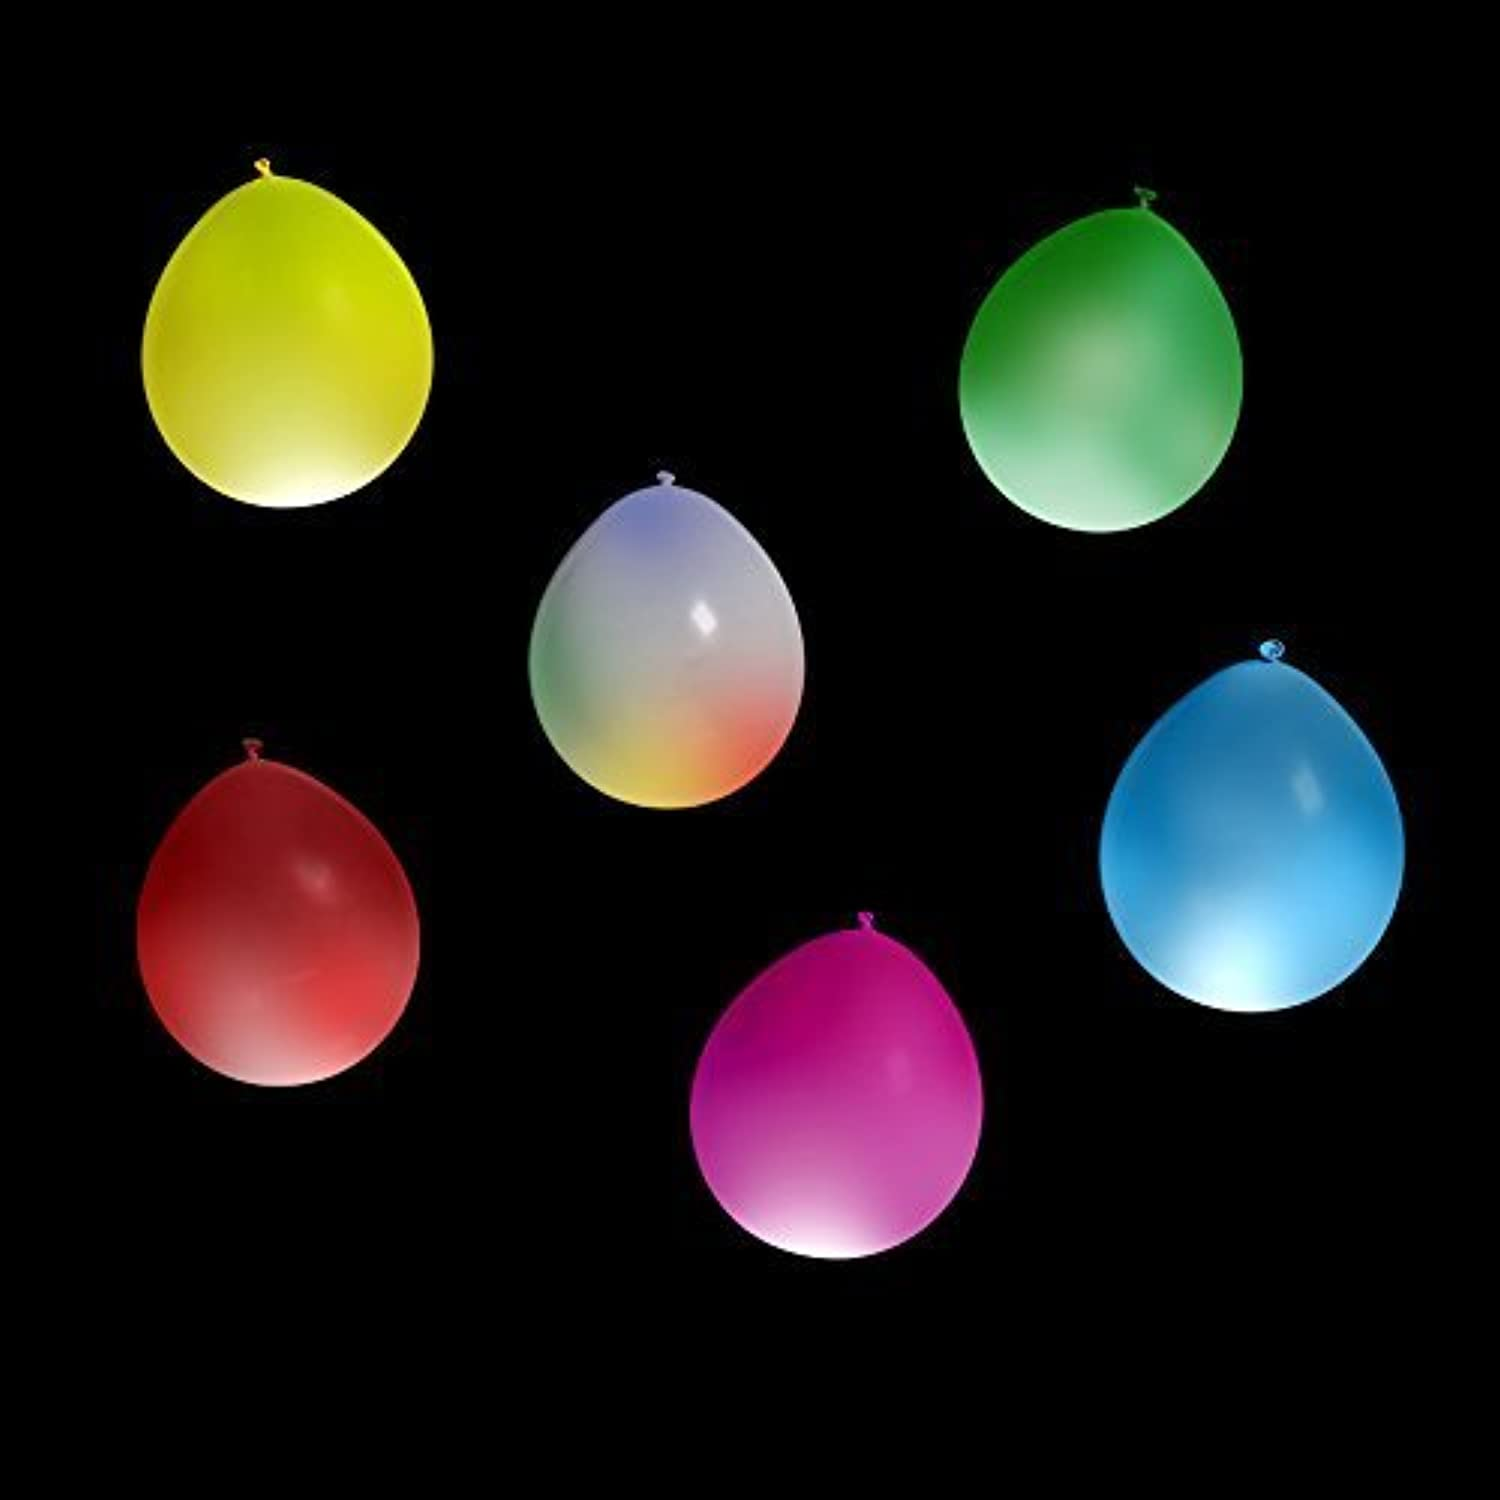 Centro comercial profesional integrado en línea. Festive Blow N' Glow LED Balloons - Light Light Light Up LED Balloons For Your Party - A Vibrant Colorojo Party Pack Of 15 Balloons - A Range Of Colors - Perfect For Kid's Parties, Celebrations And To Have FUN  by Zirrly  Precio por piso